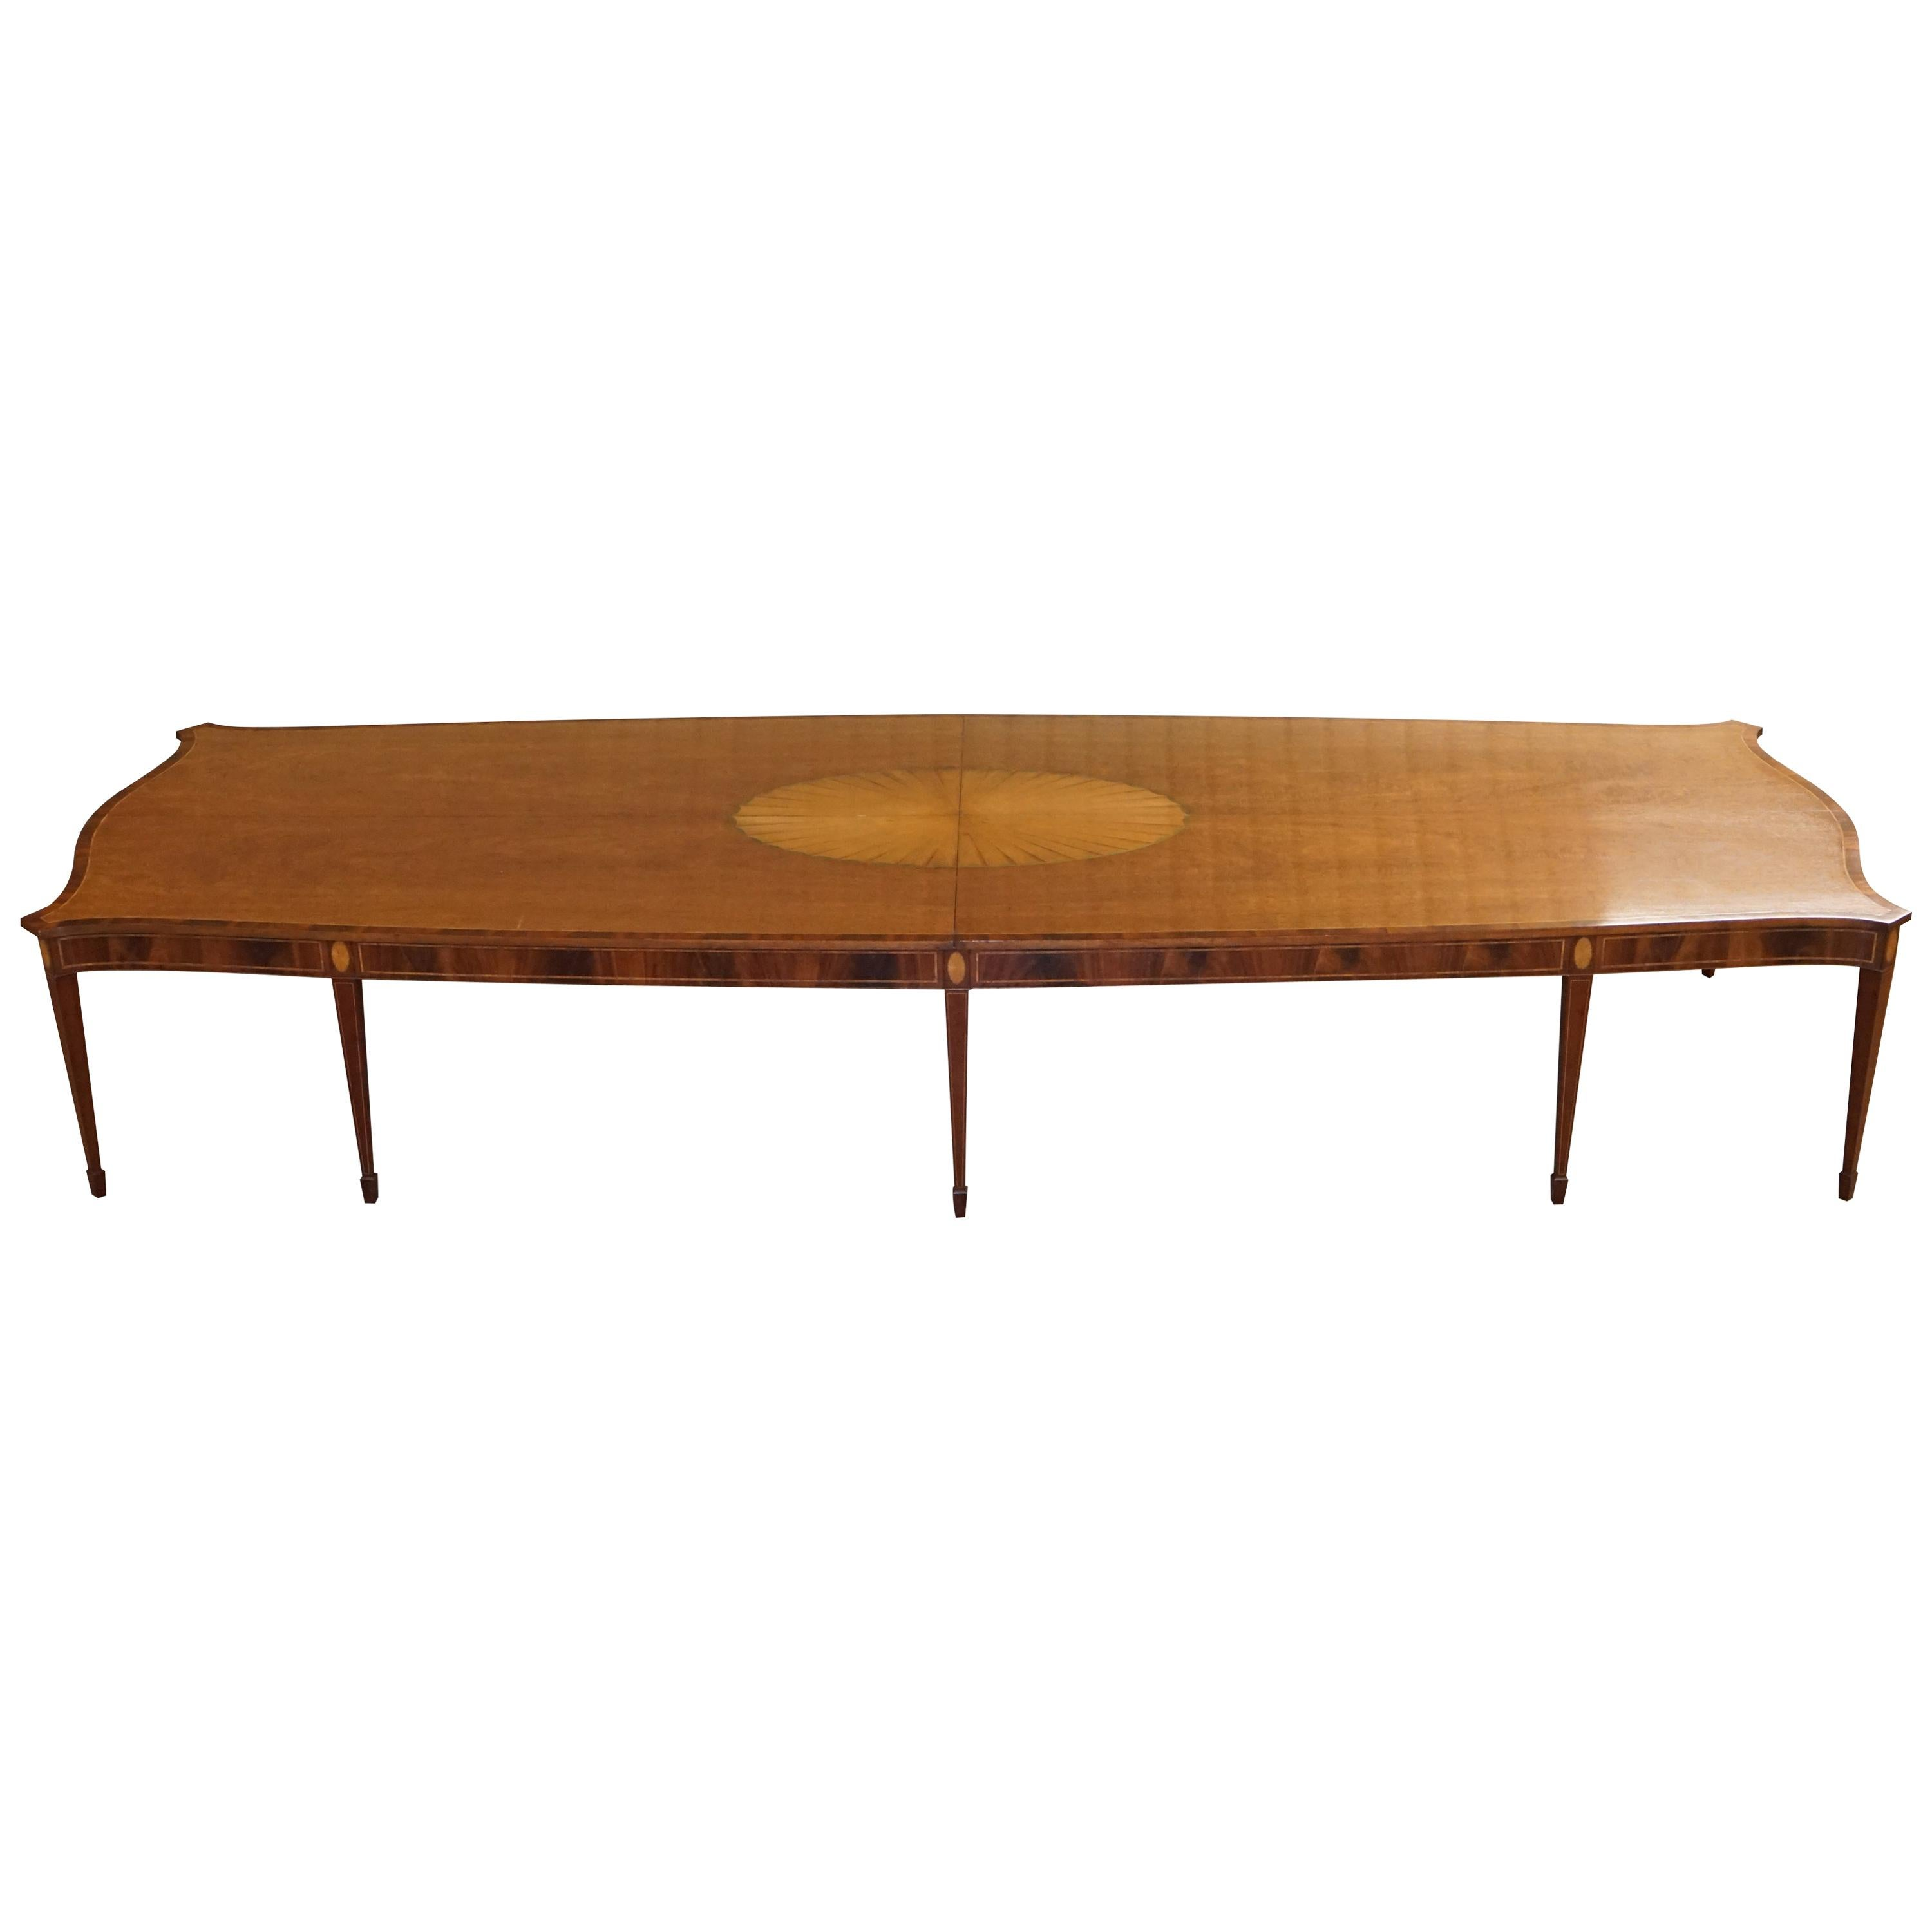 Huge Sheraton Revival Hardwood & Walnut Dining Table Matching Chairs Available